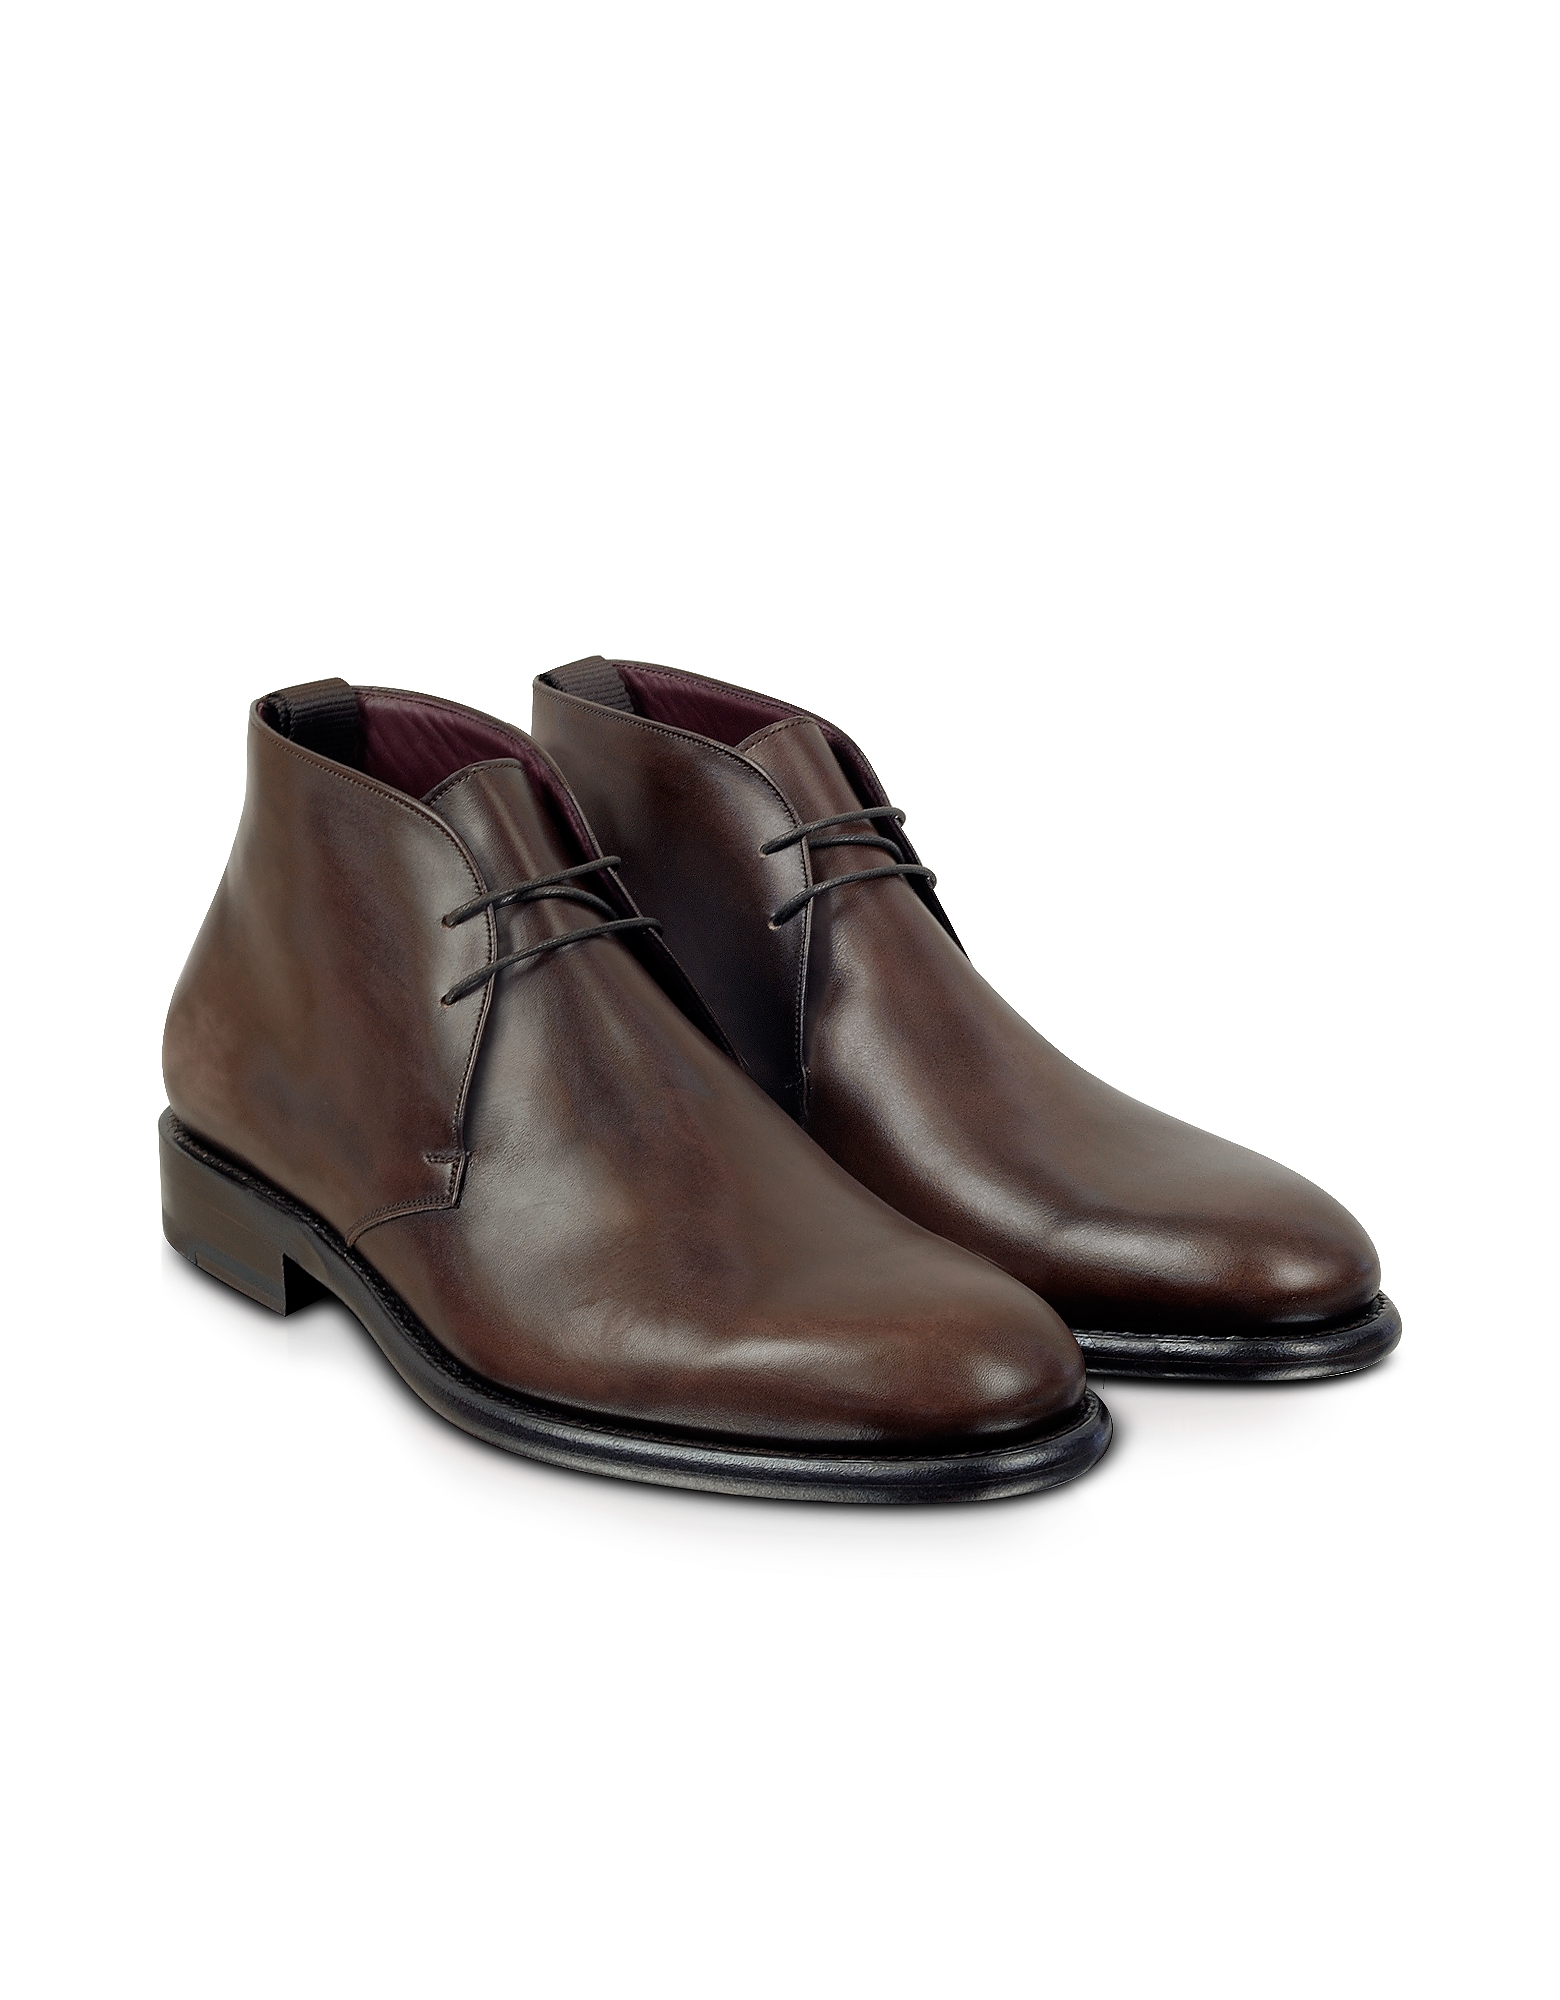 Fratelli Borgioli Shoes, Cayenne - Leather Derby Boot